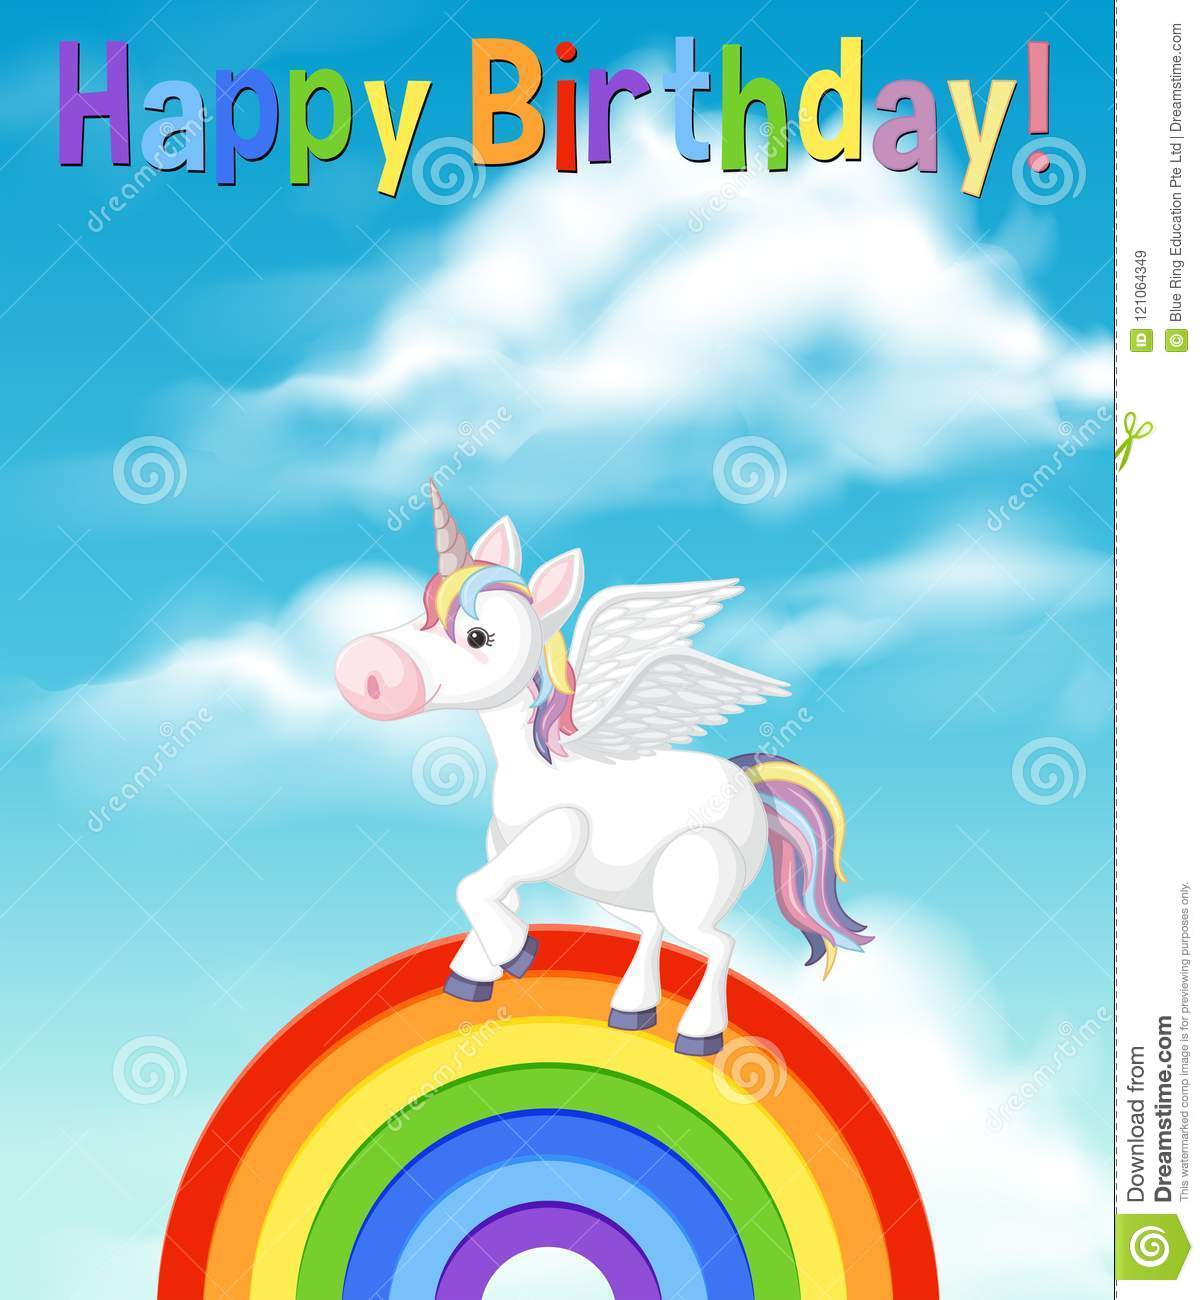 A Happy Birthday Card With Unicorn Stock Vector Illustration Of